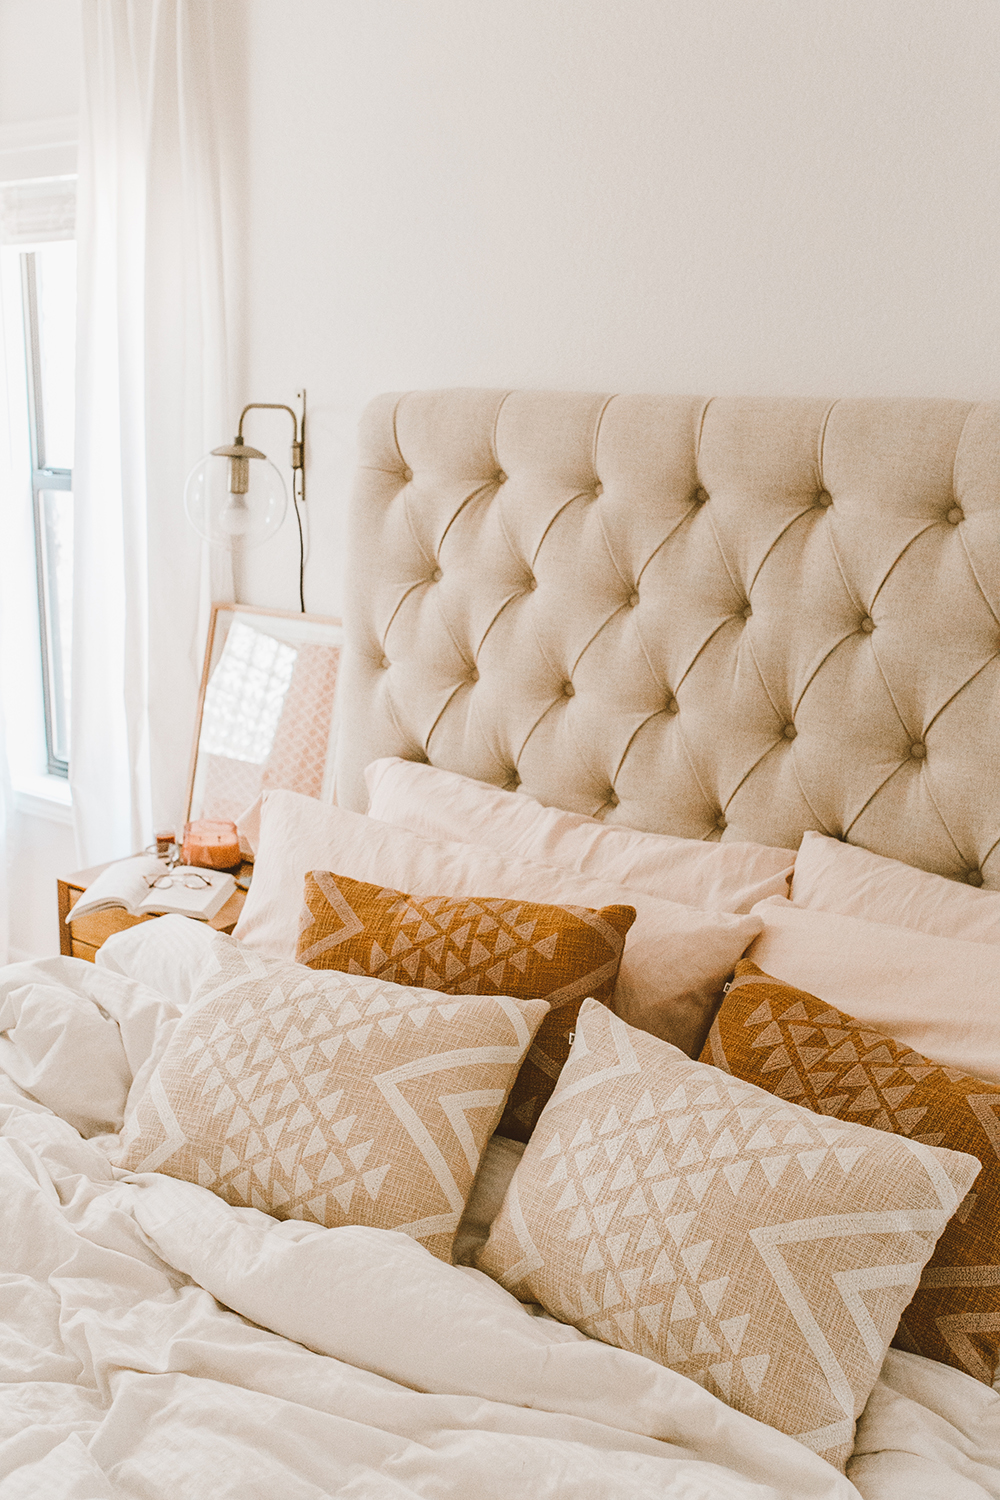 livvyland-blog-olivia-watson-austin-texas-lifestyle-blog-urban-outfitters-home-decor-bohemian-cozy-throw-pillows-bedroom-ideas-3